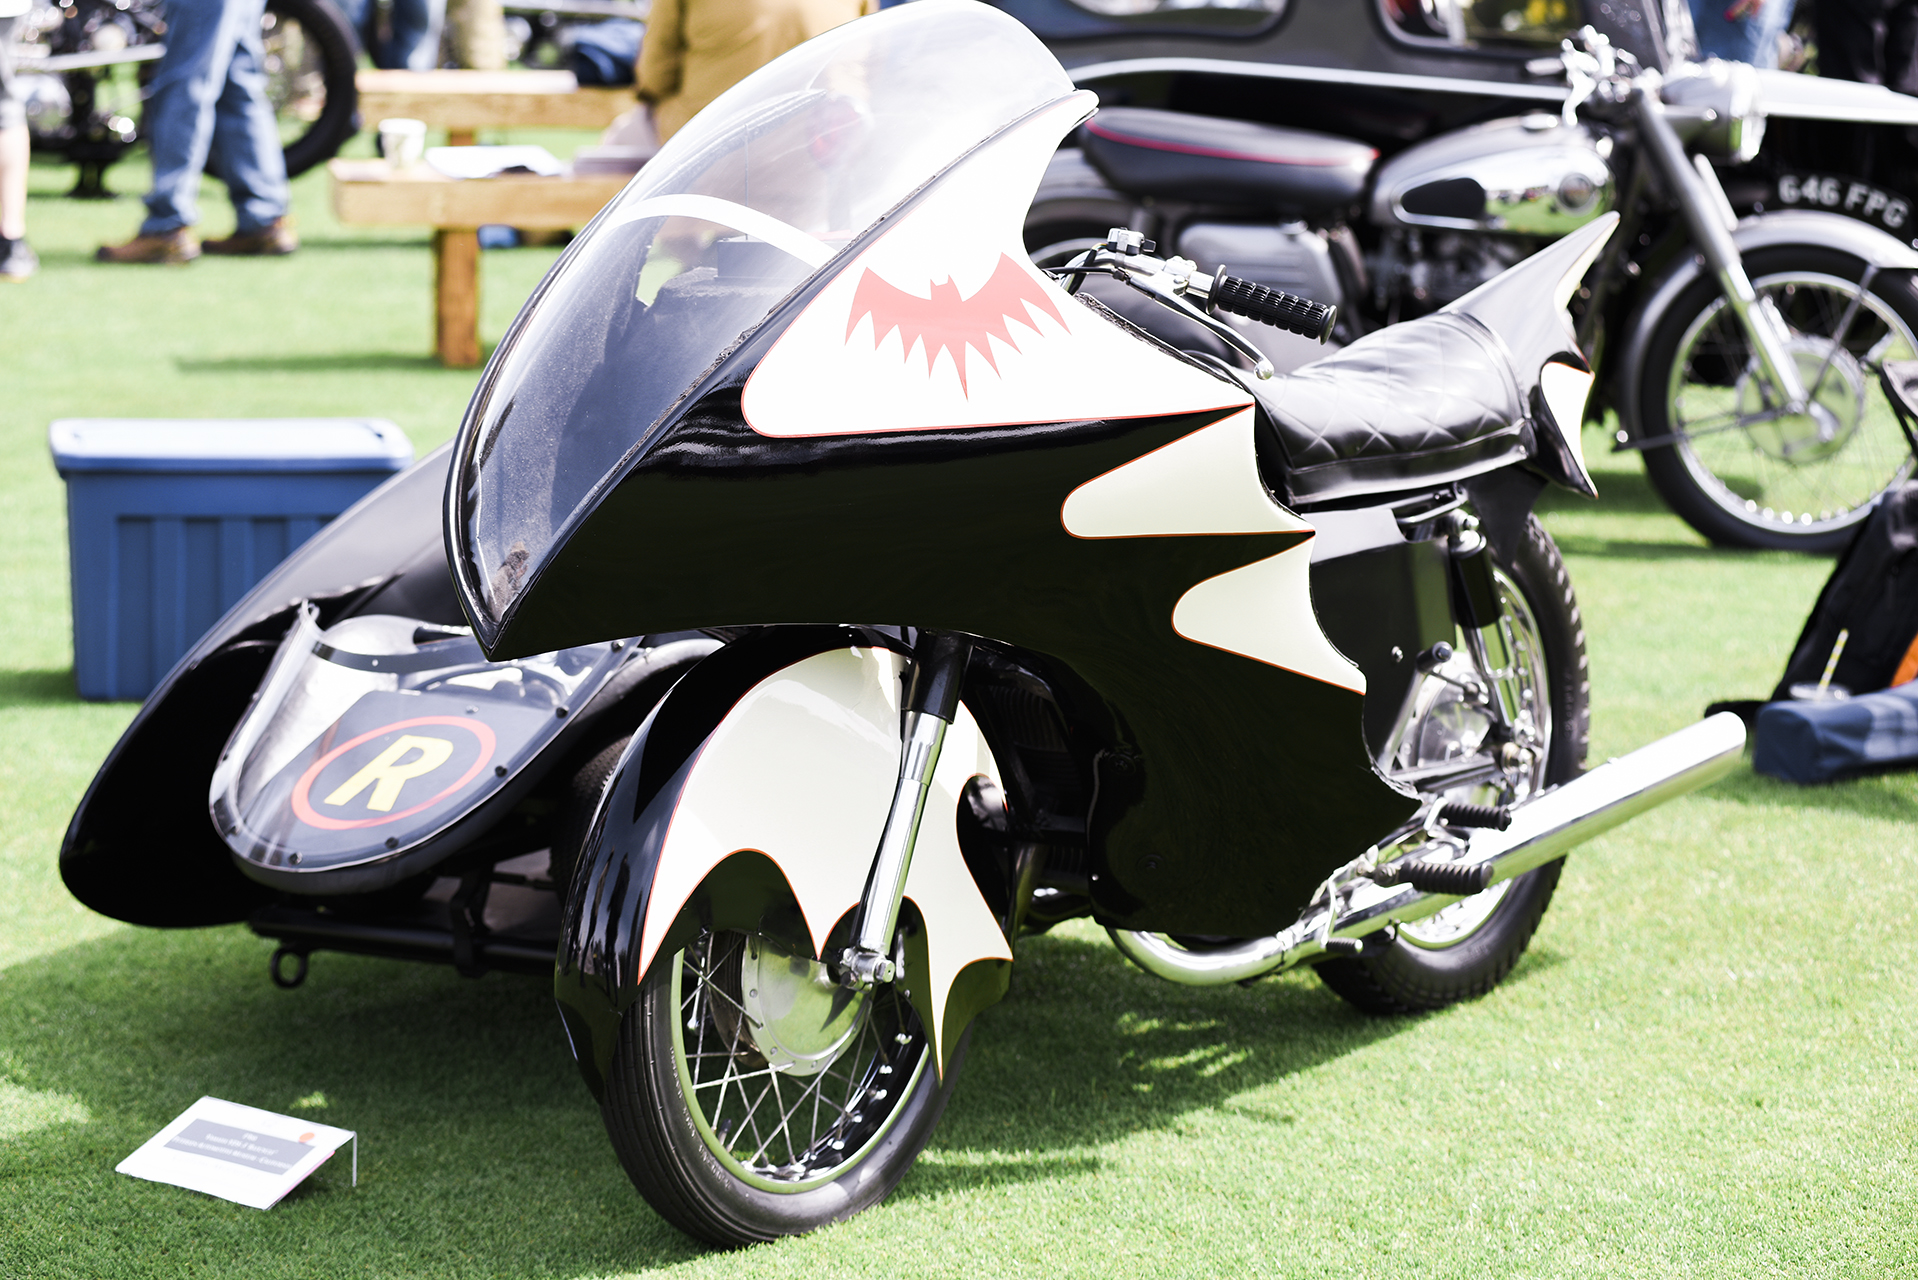 The Batcycle from the Adam West TV show. Under all the George Barris bodywork lurks a Yamaha two stroke.